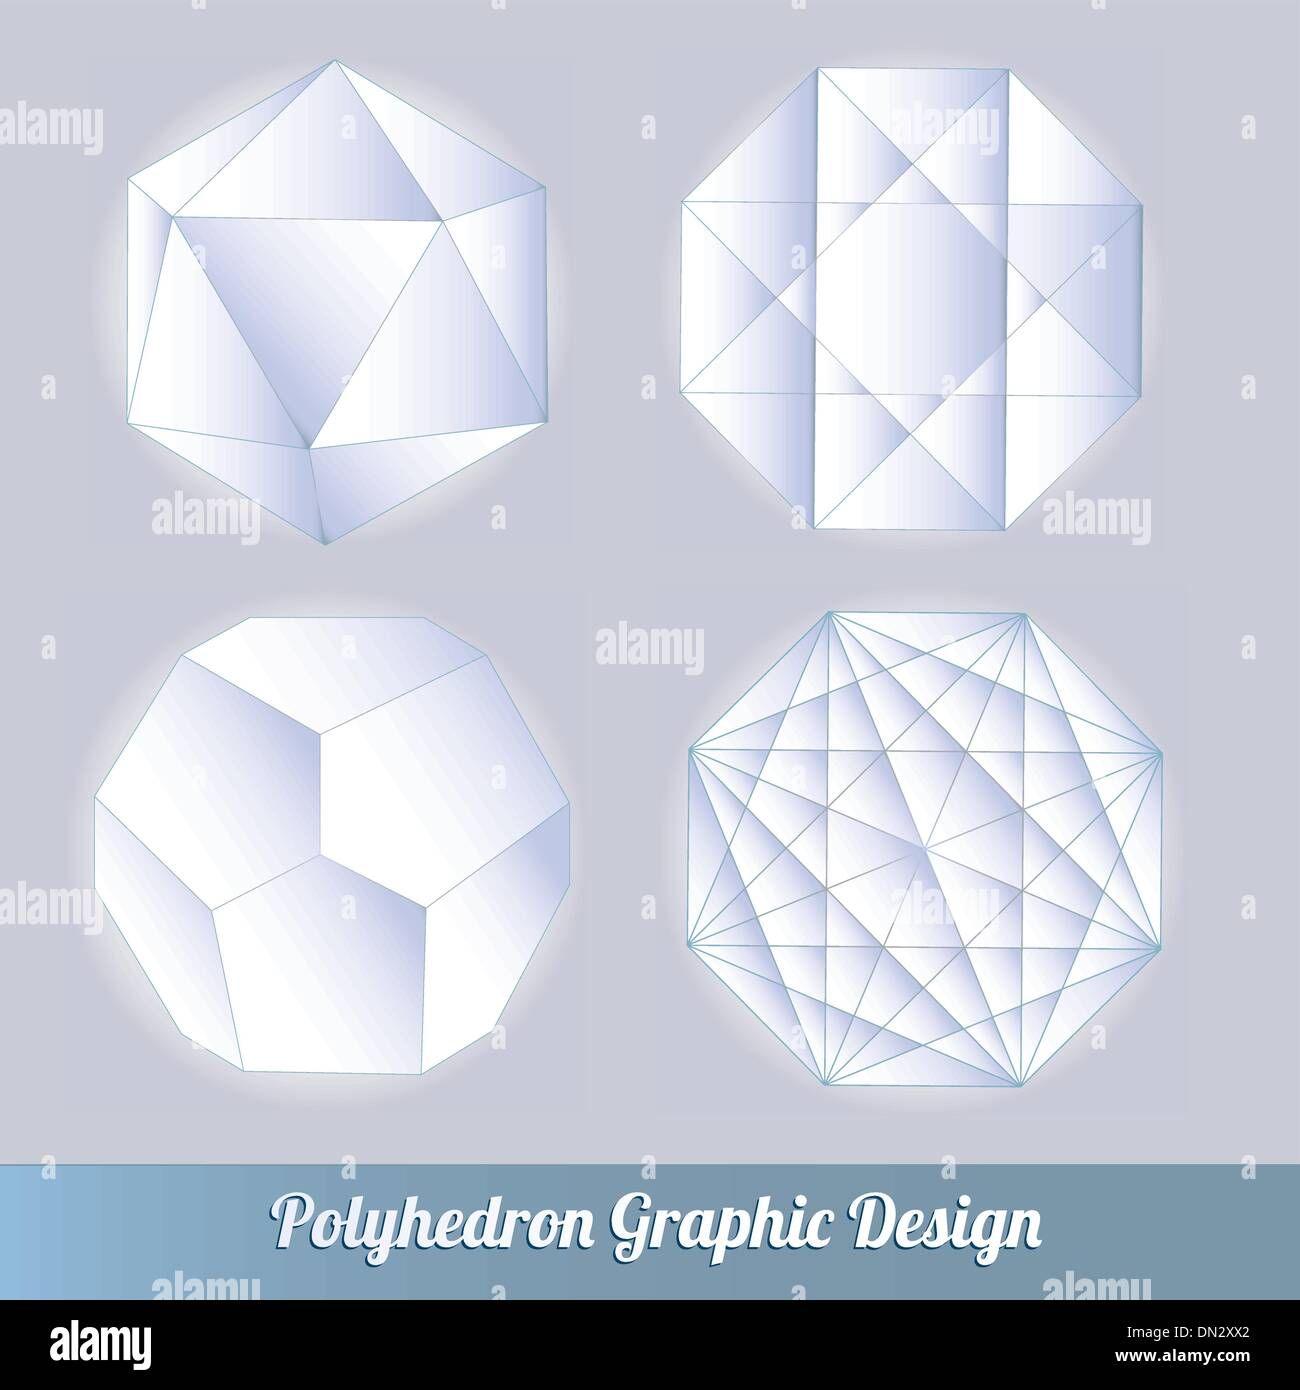 polyhedron for graphic design - Stock Image